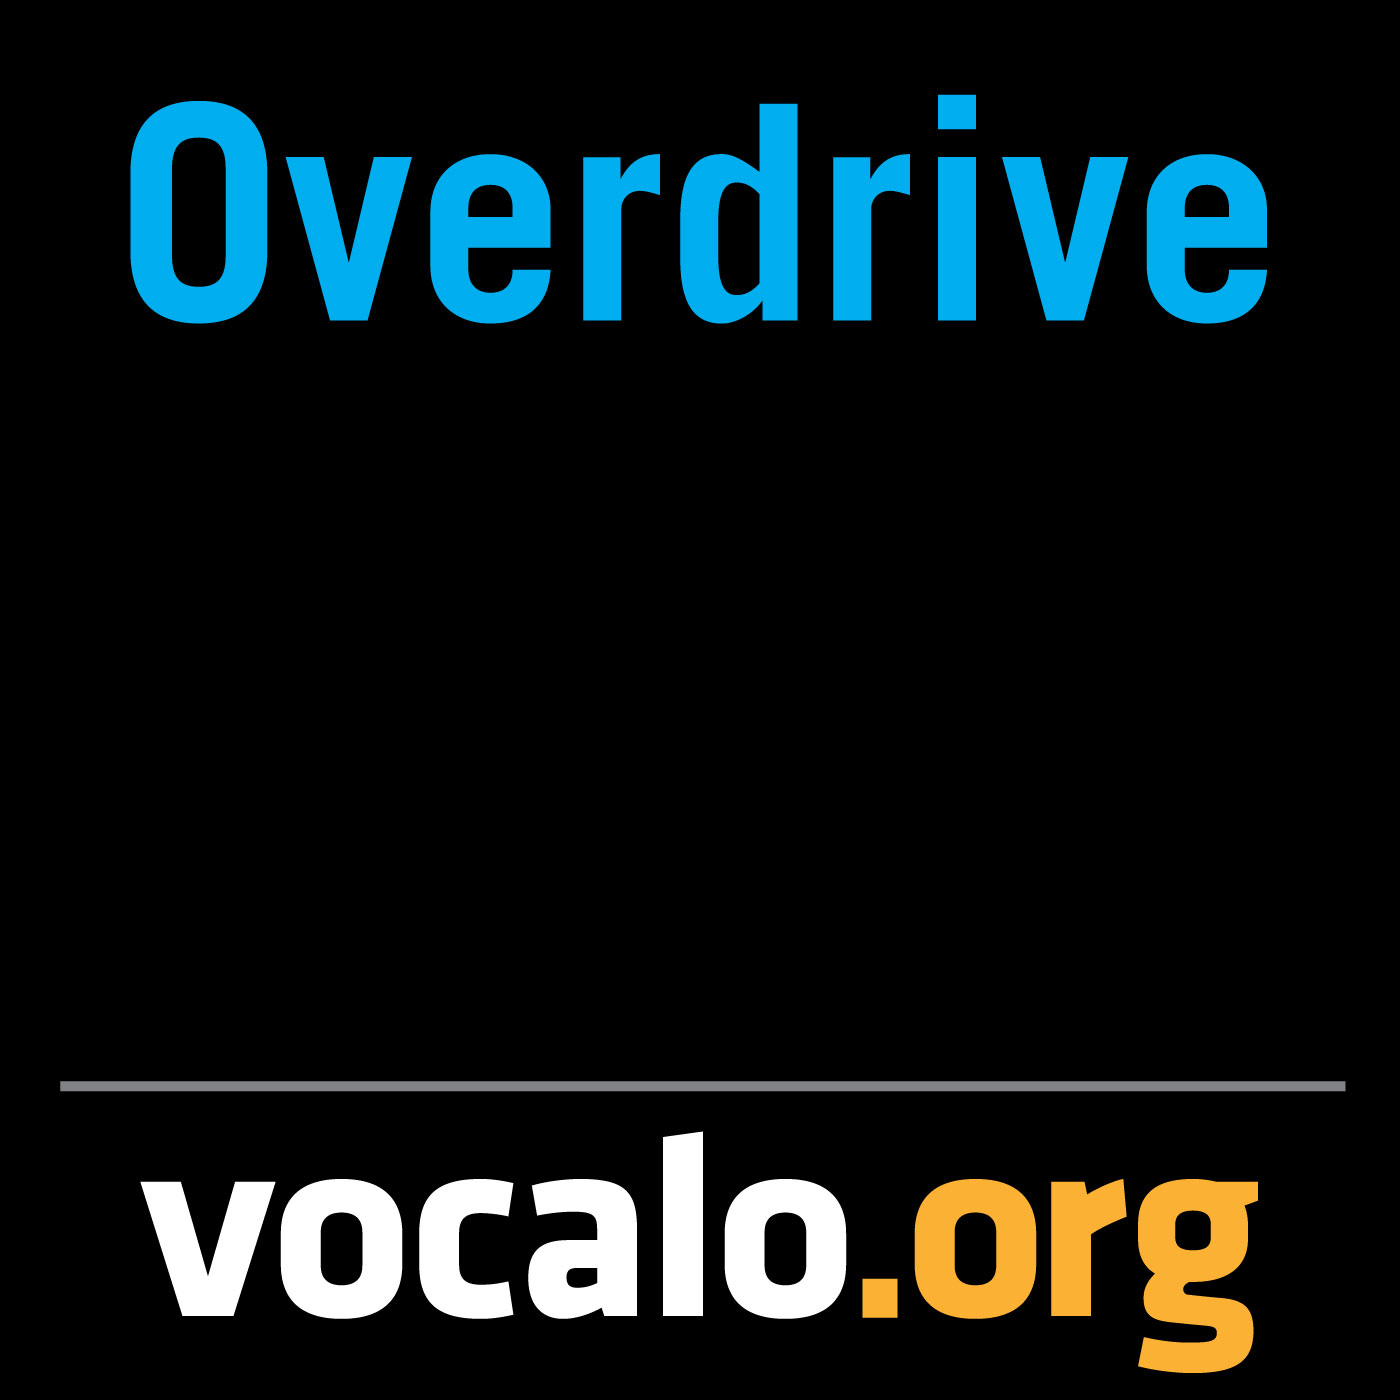 Vocalo's Overdrive